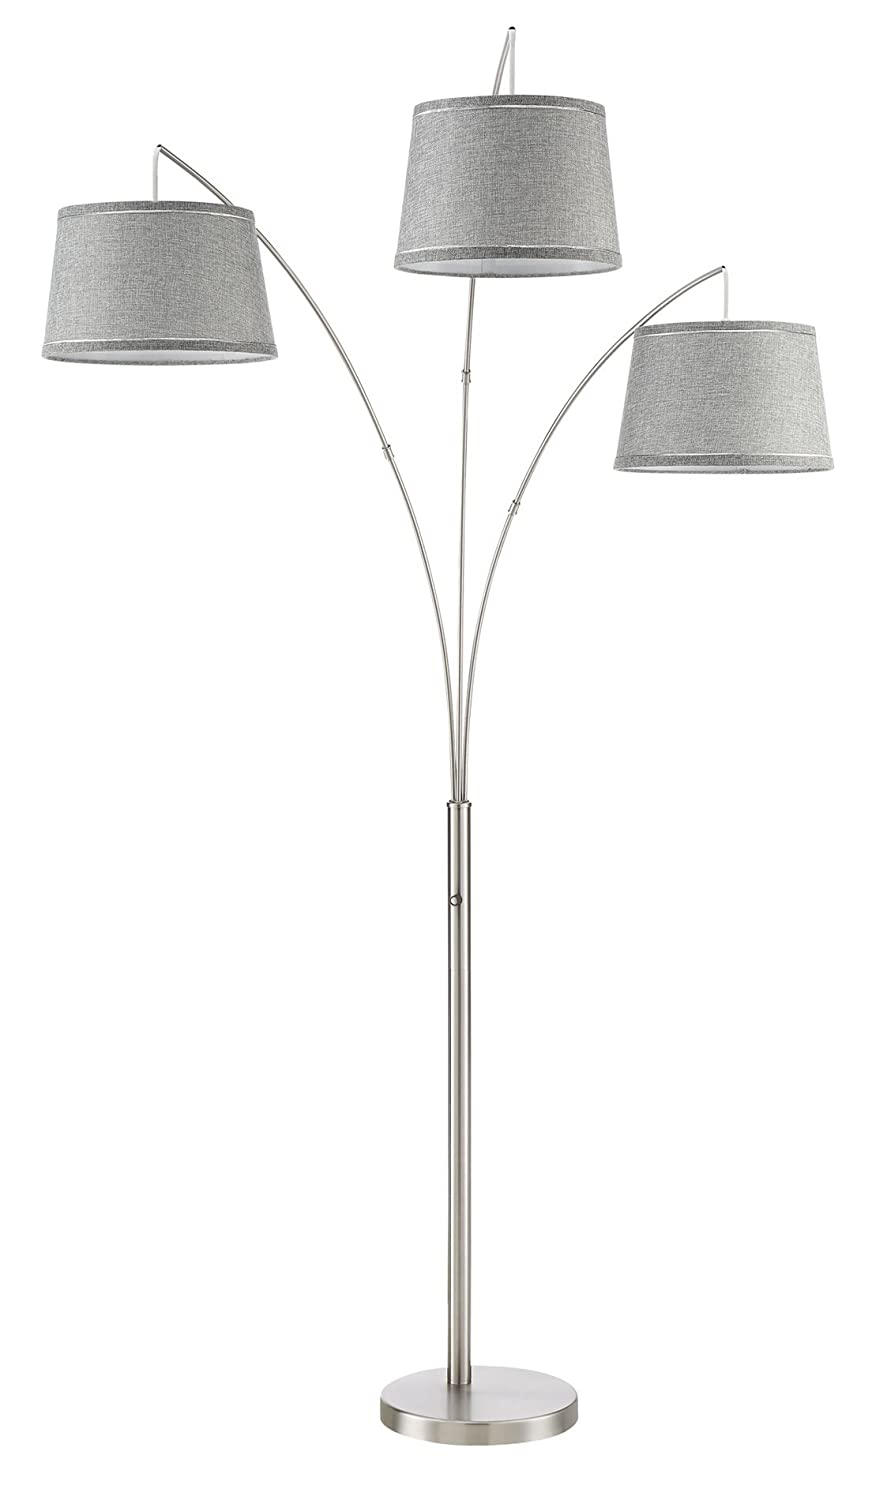 "Kira Home Akira 78.5"" Modern 3-Light Arc Floor Lamp with 3-Way Switch, Gray Burlap Shades + Brushed Nickel Finish"